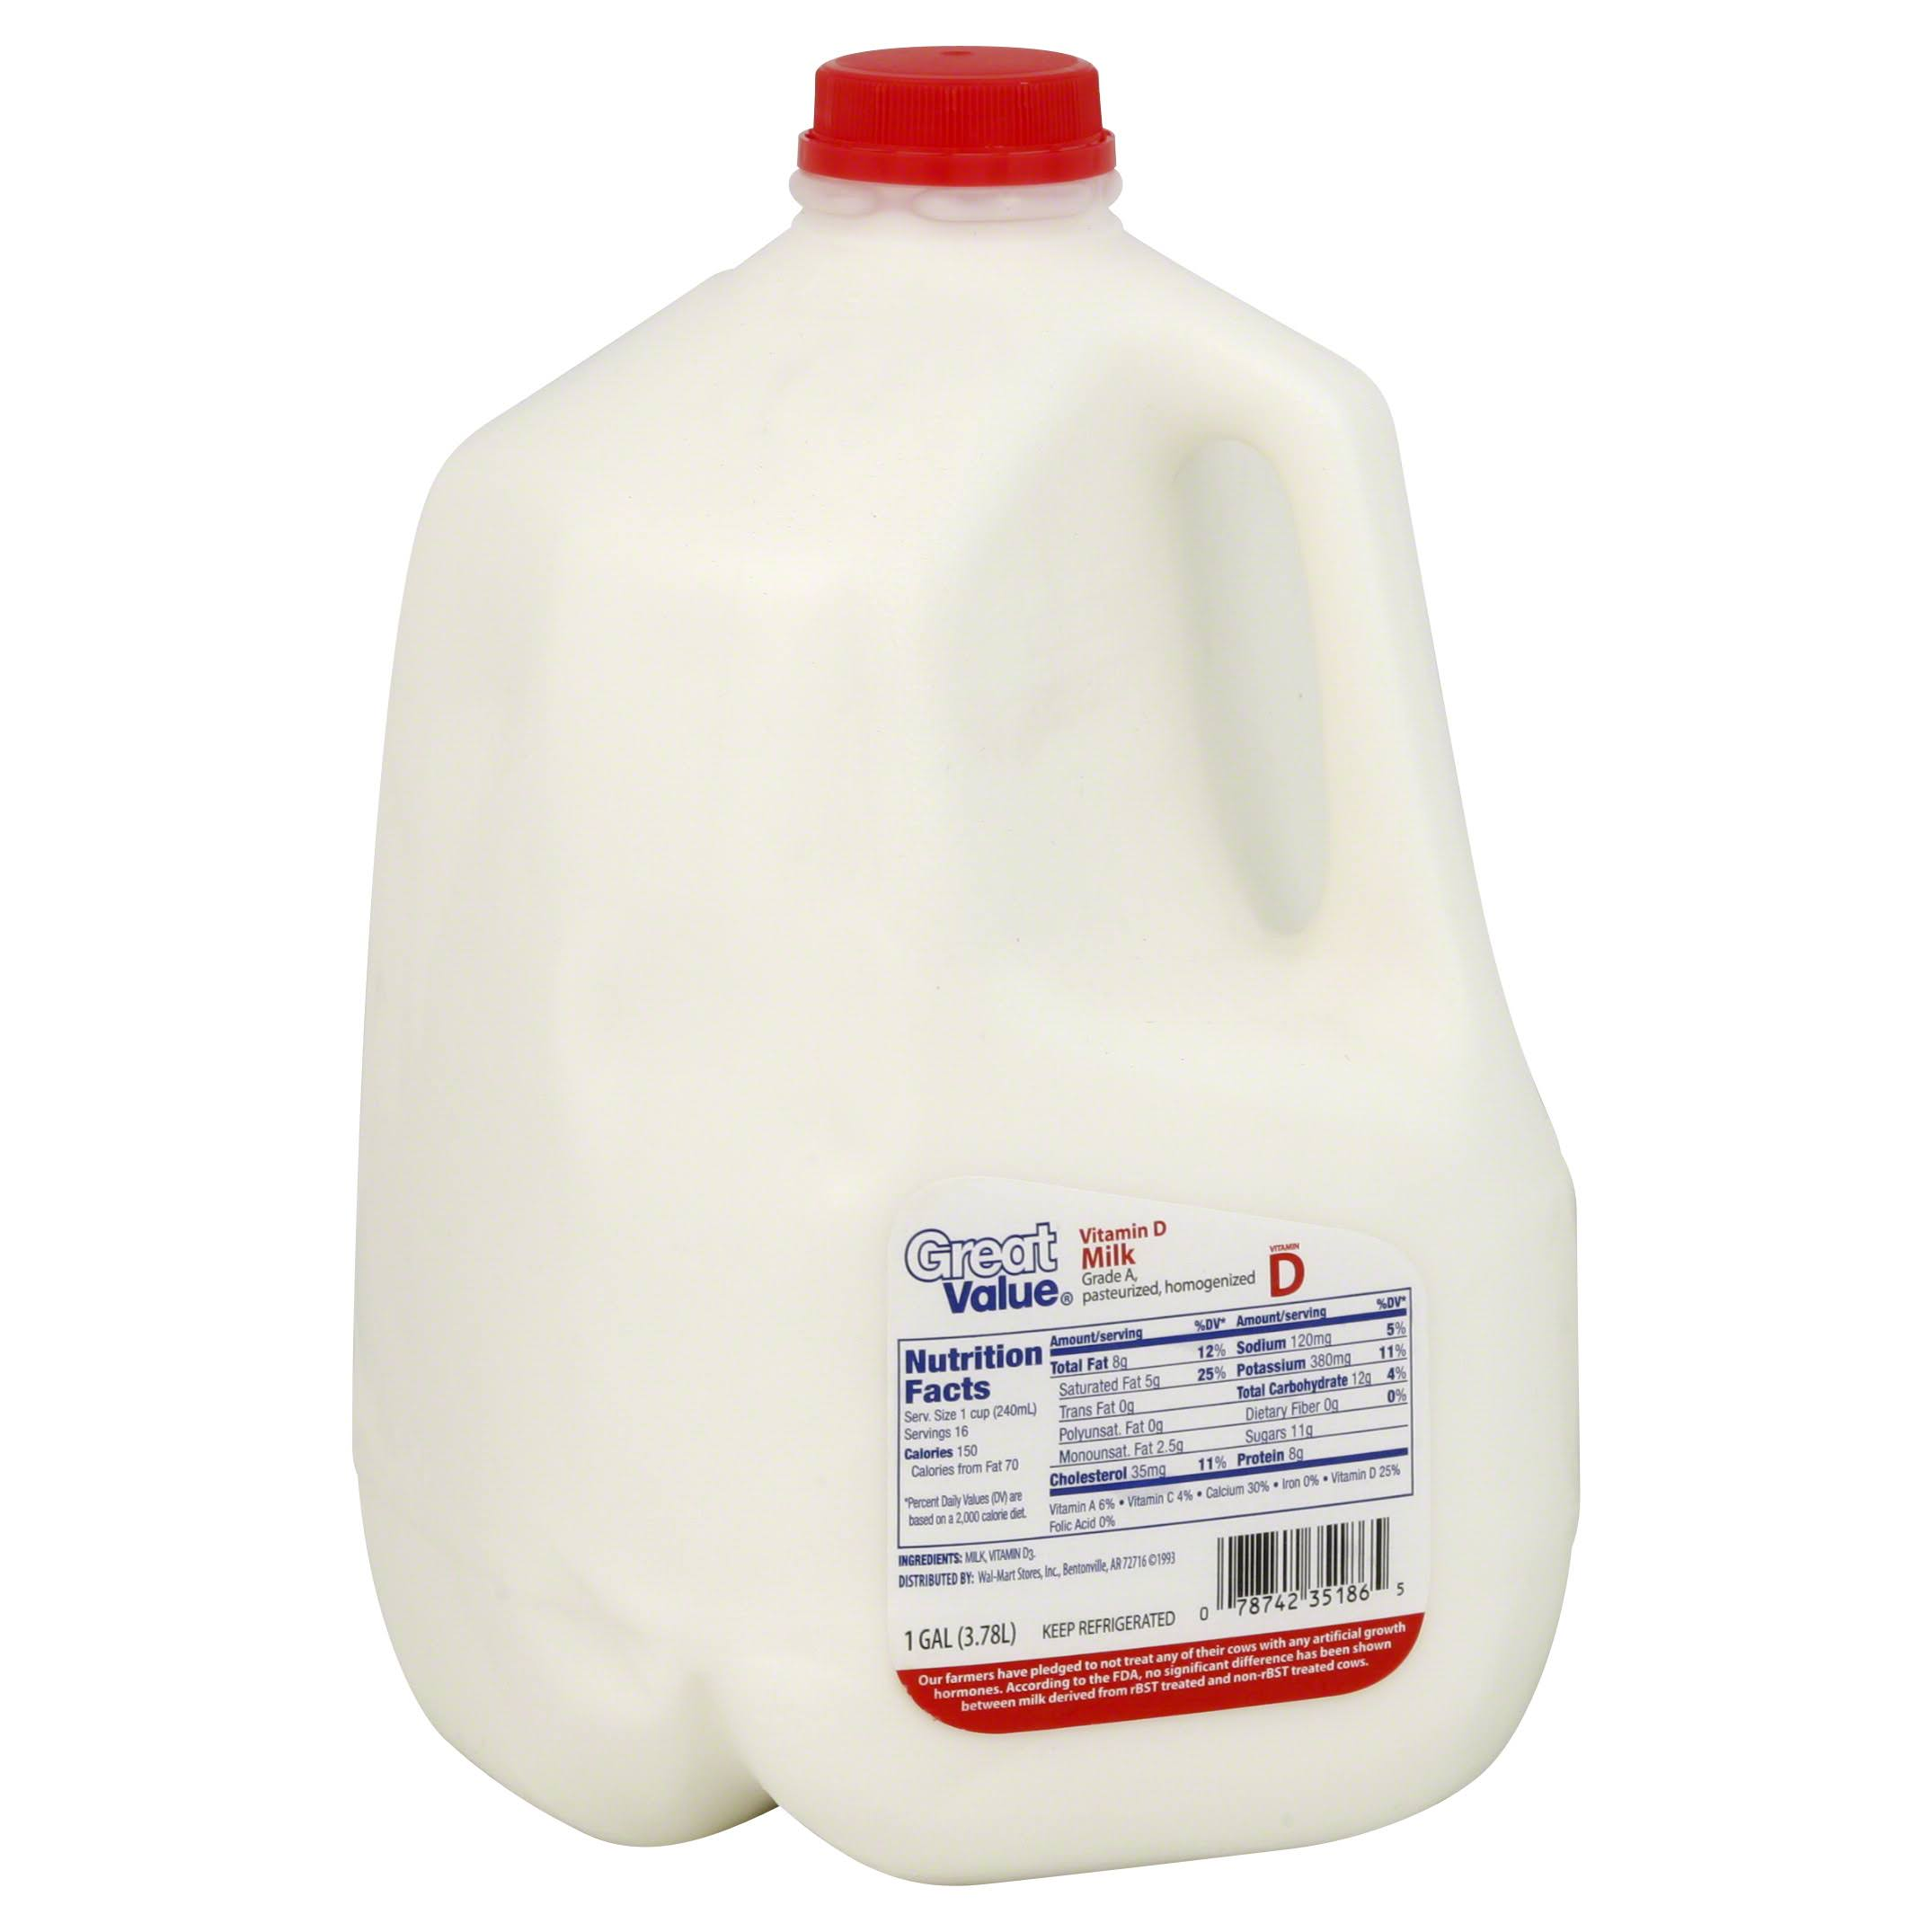 Great Value Vitamin D Milk - 1gal